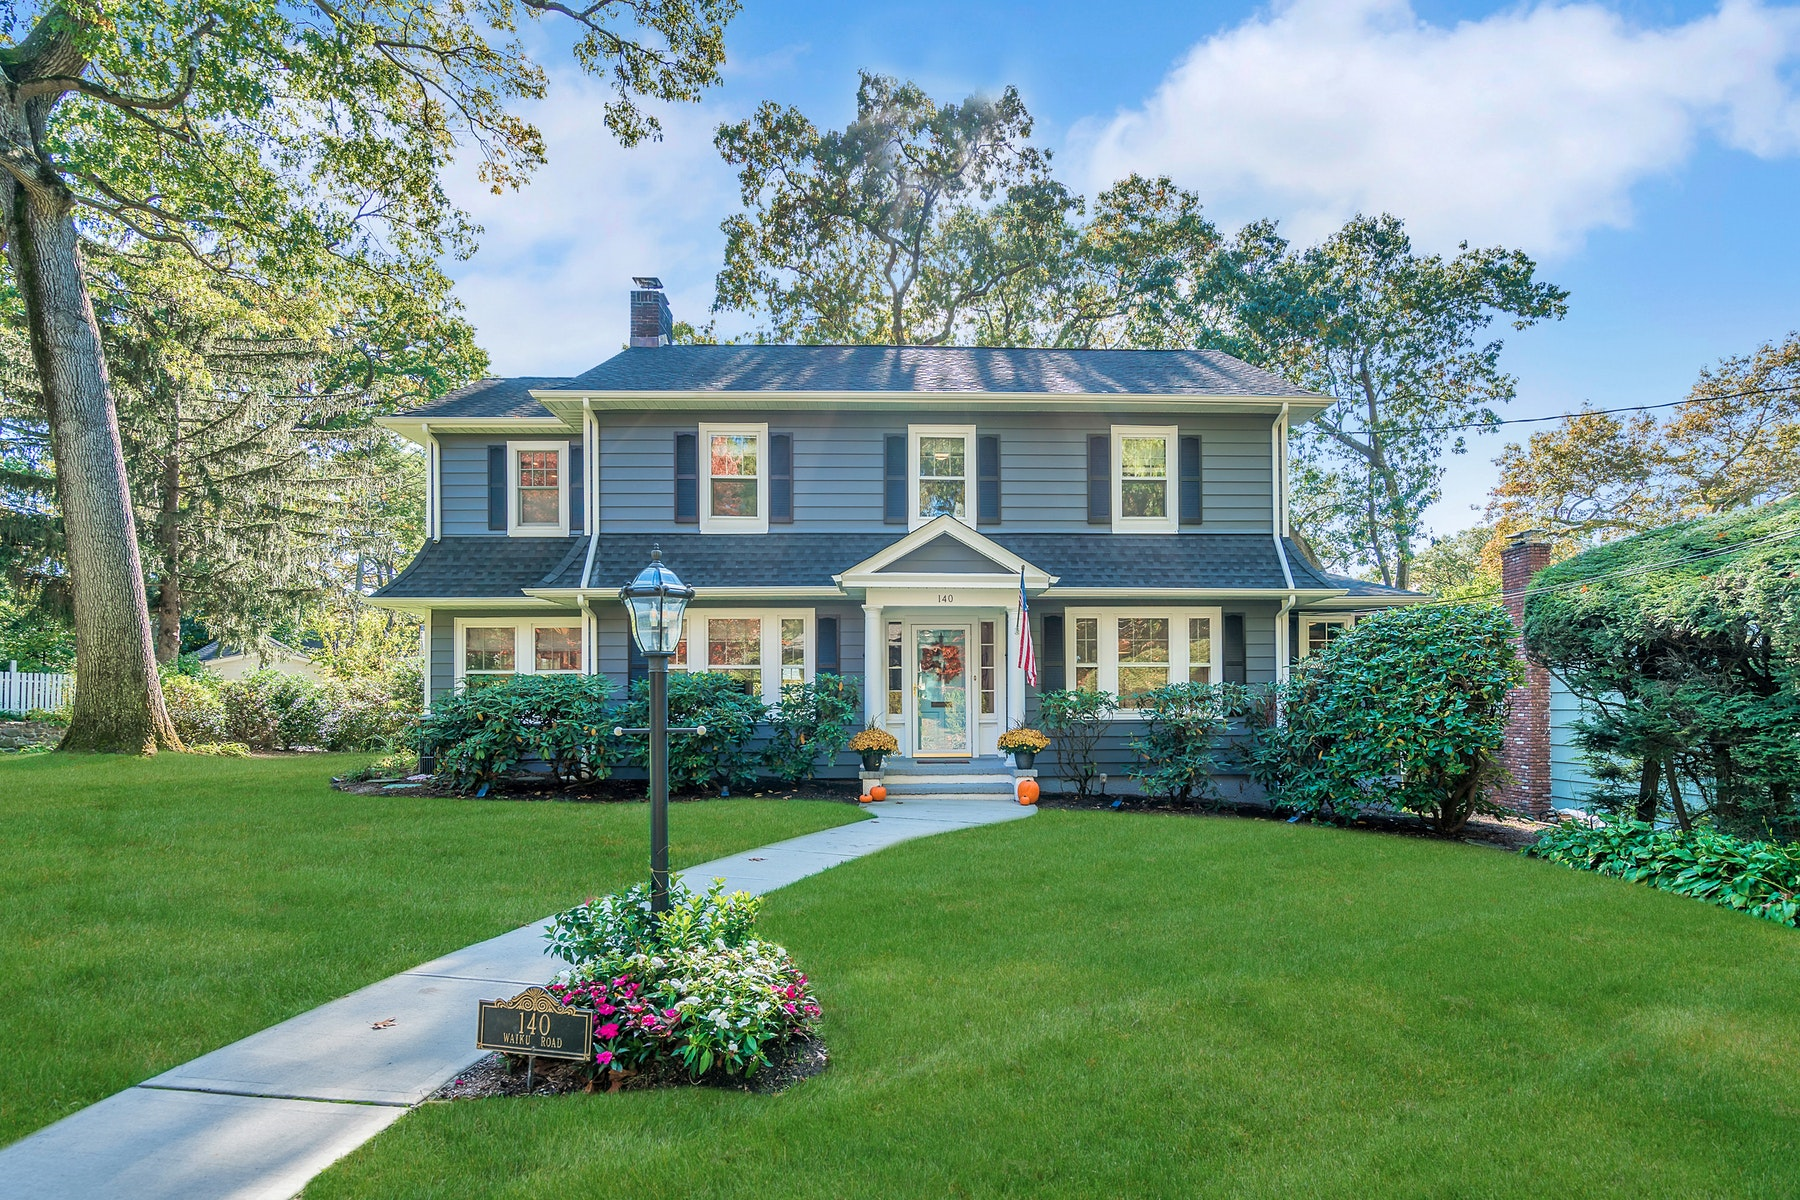 Single Family Homes for Sale at Classic Ridgewood Colonial 140 Waiku Road Ridgewood, New Jersey 07450 United States